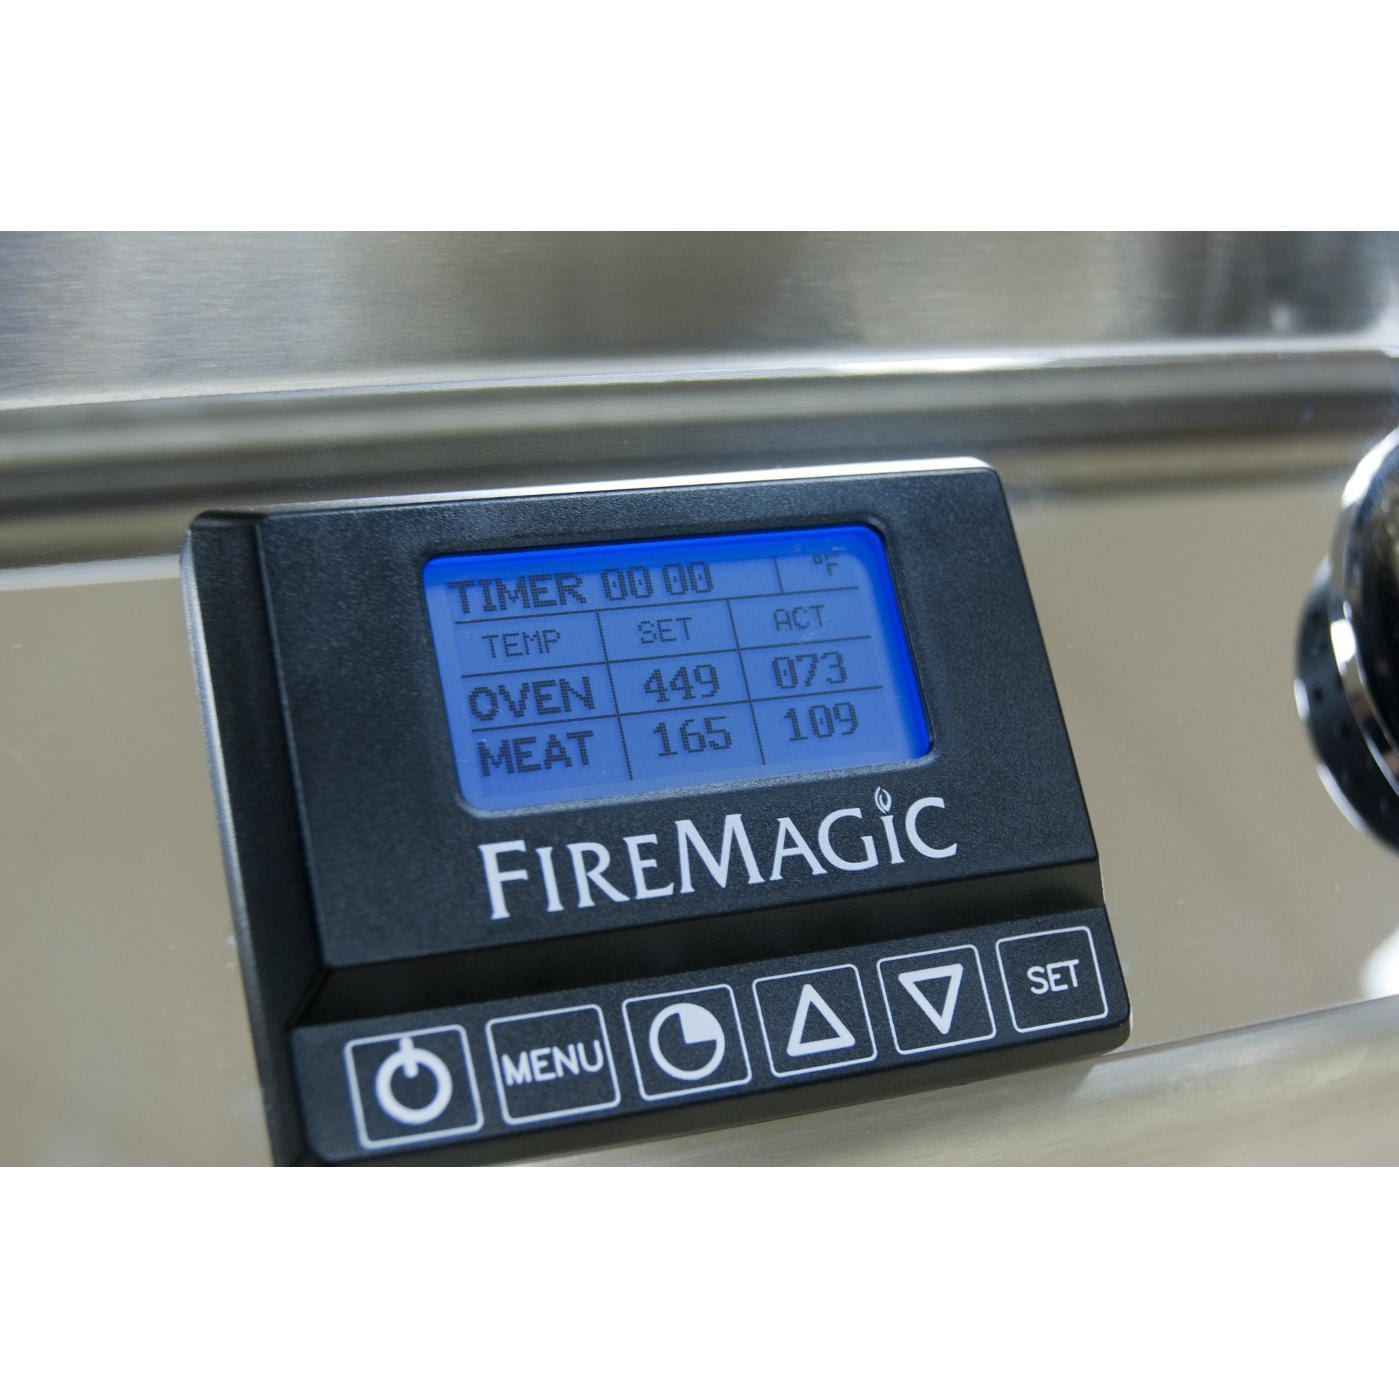 Fire Magic Aurora A430s 24 Inch Freestanding Grill - Digital Thermometer